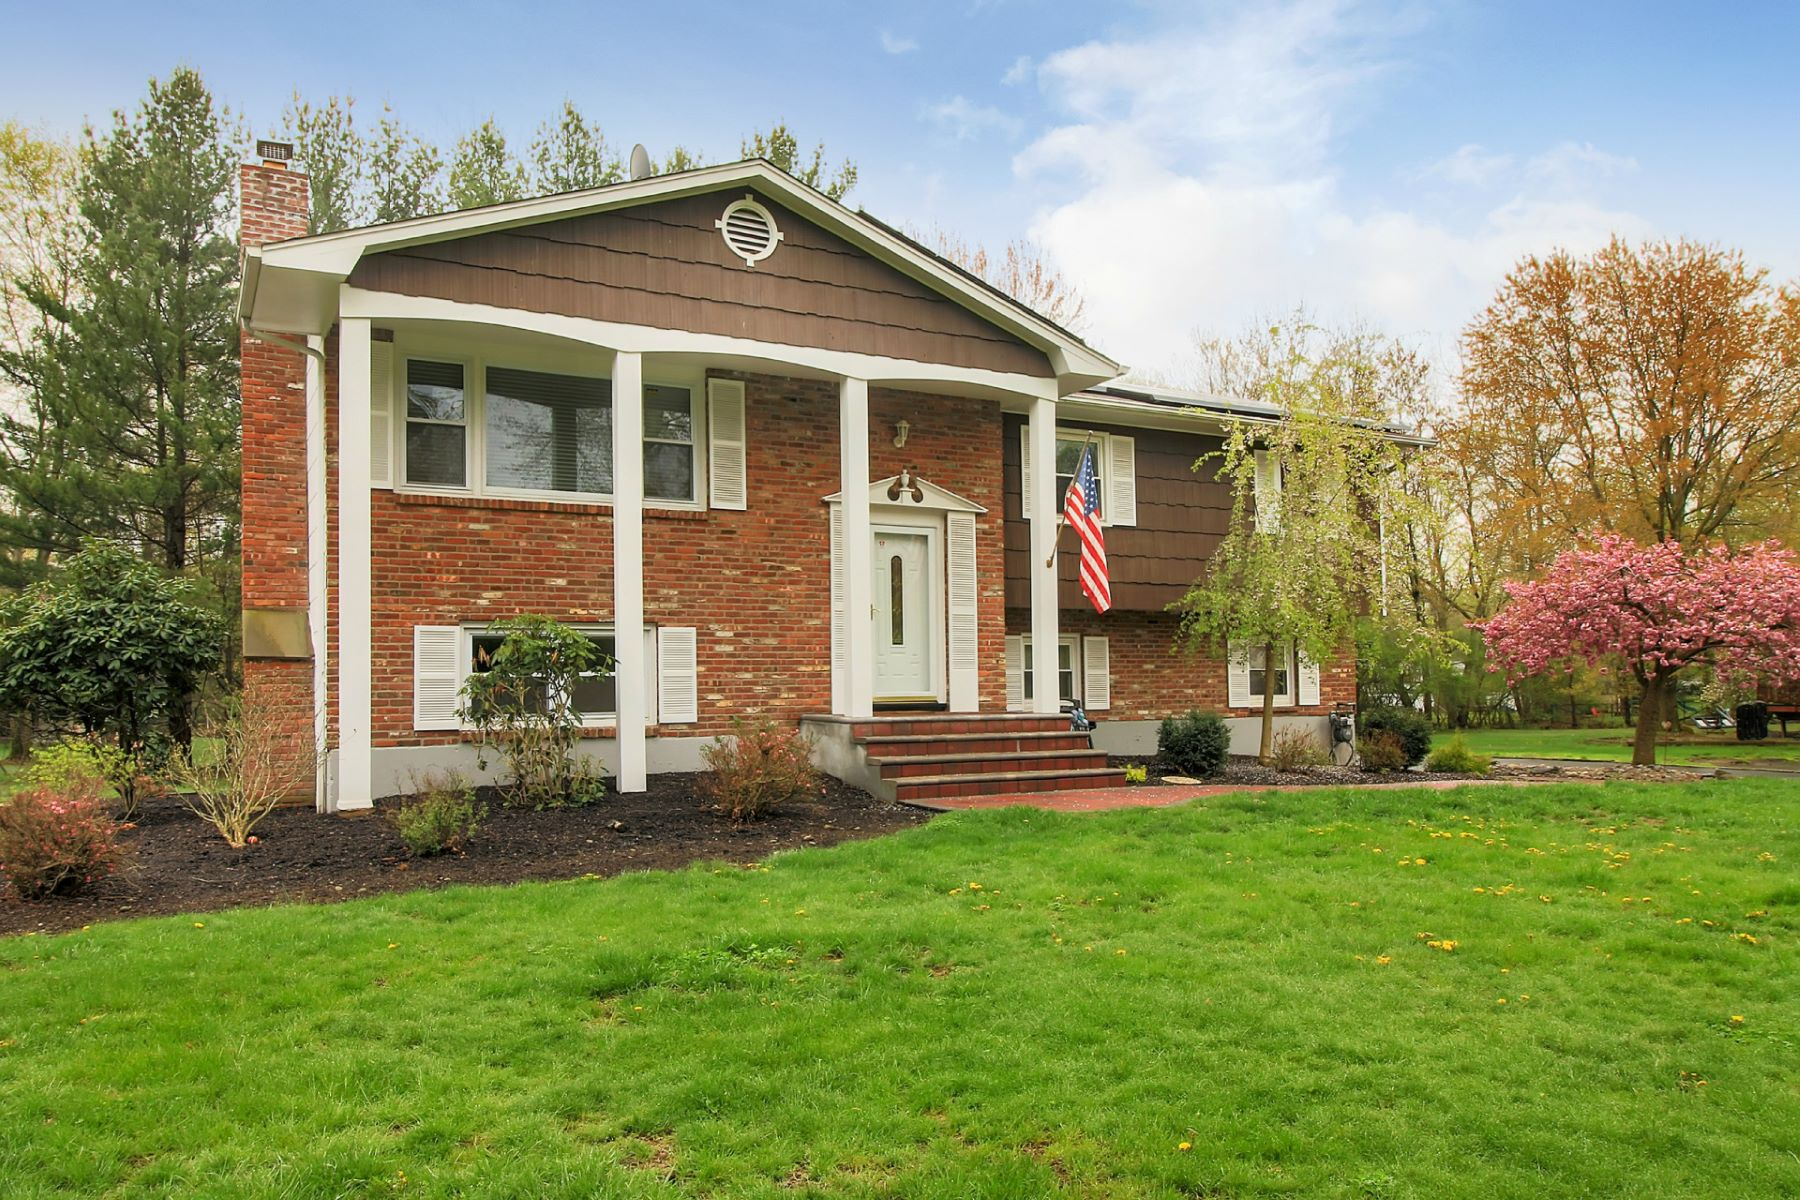 Single Family Home for Sale at Quiet Cul-de-sac Setting 10 Independence Court New City, New York 10956 United States